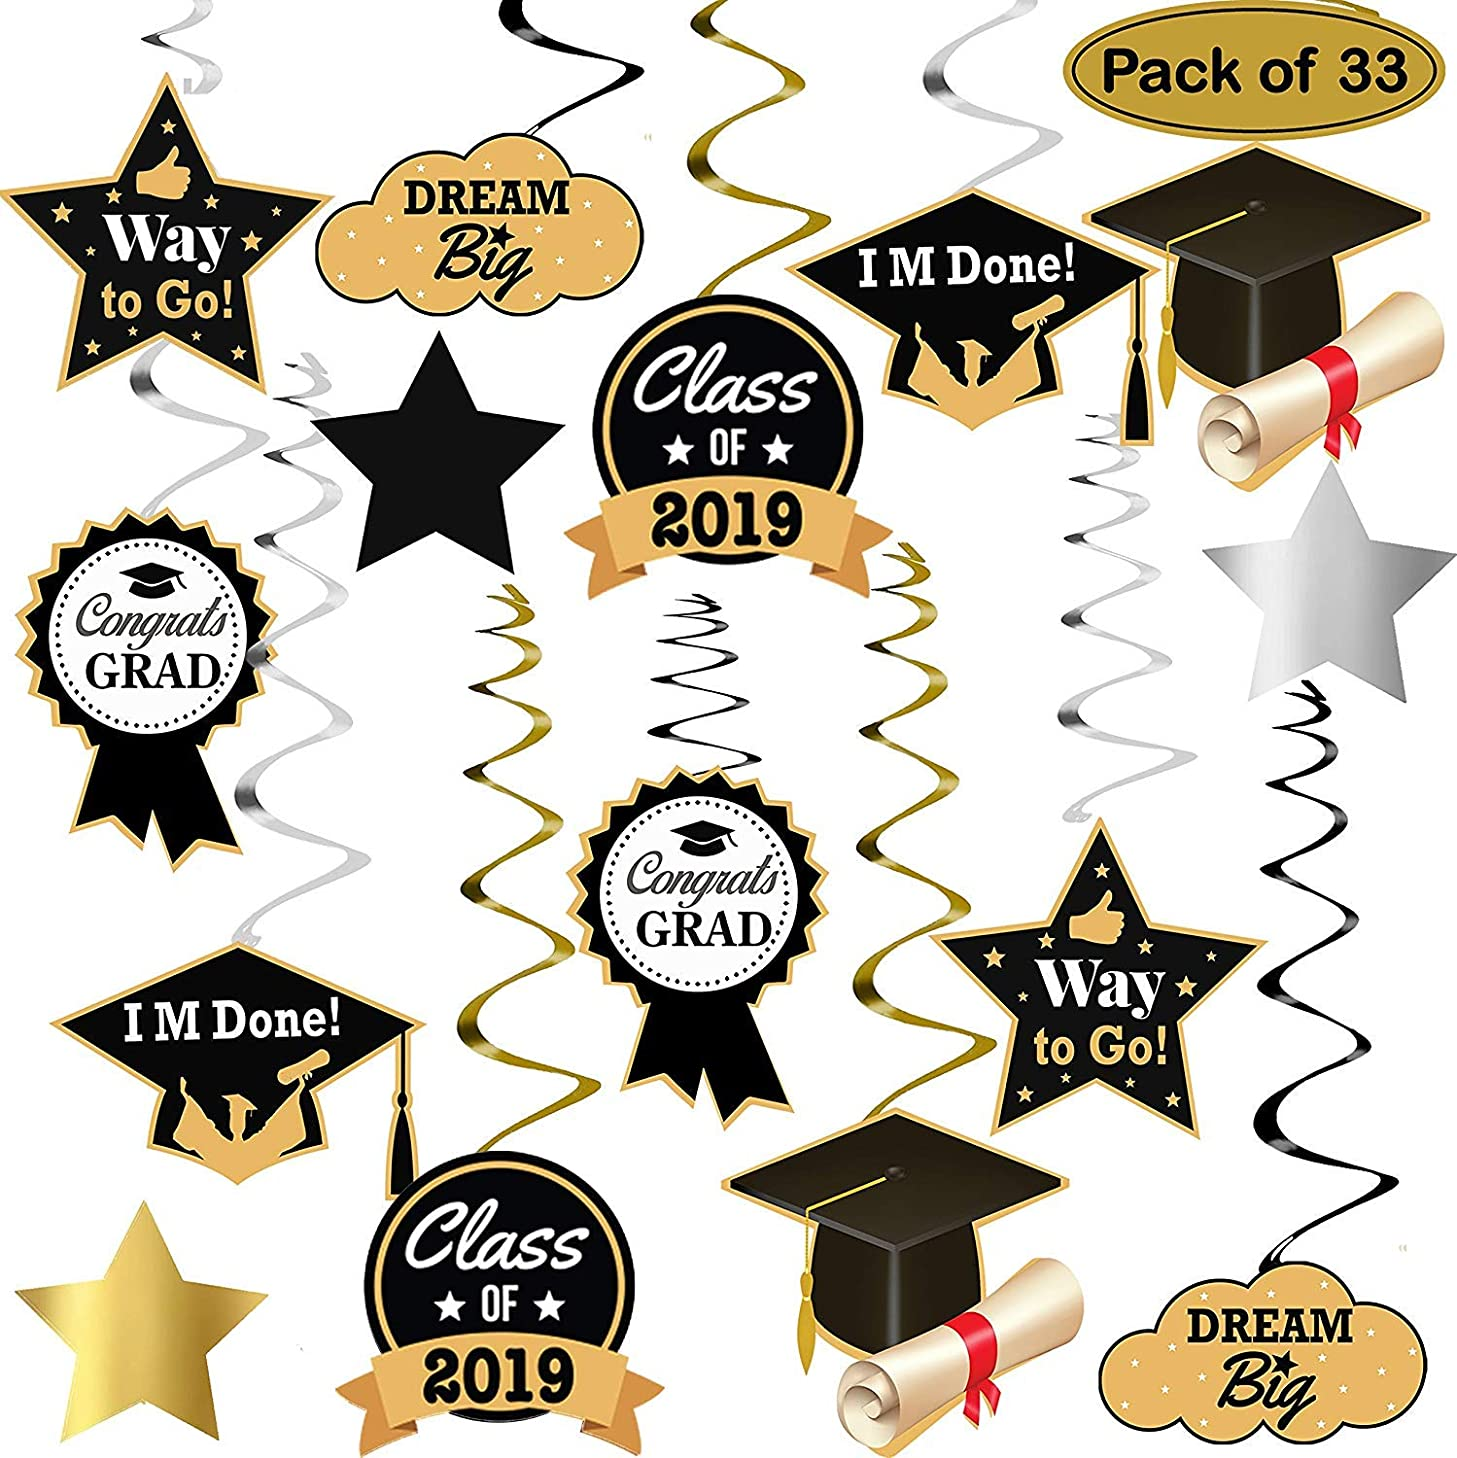 Graduation Hanging Decorations Swirls Kit - Big Pack of 33 | Beautiful Hanging Ceiling and Door Decoration for Graduation Party Supplies 2019 | Graduation Decorations for High School Prom Grad Party